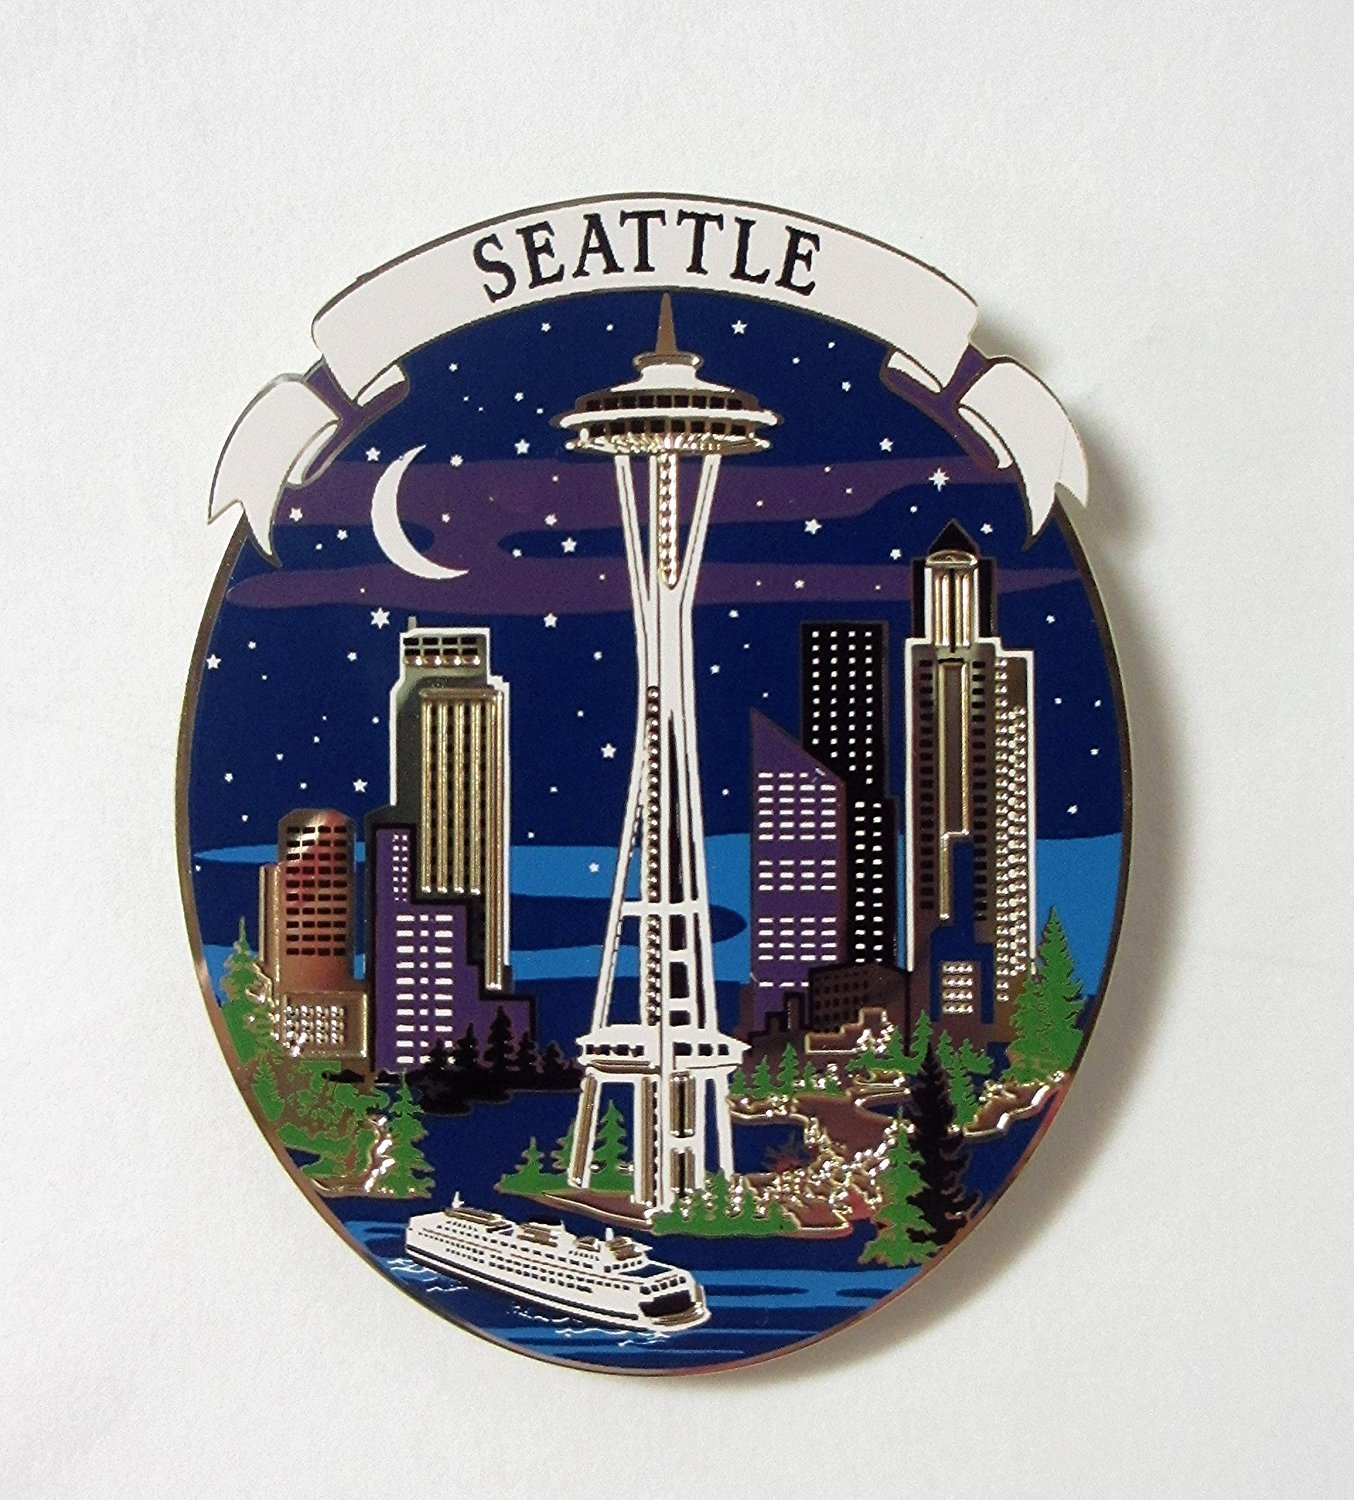 Seattle Magnet Souvenir City Skyline at Night Space Needle Waterfront Ferry Ship